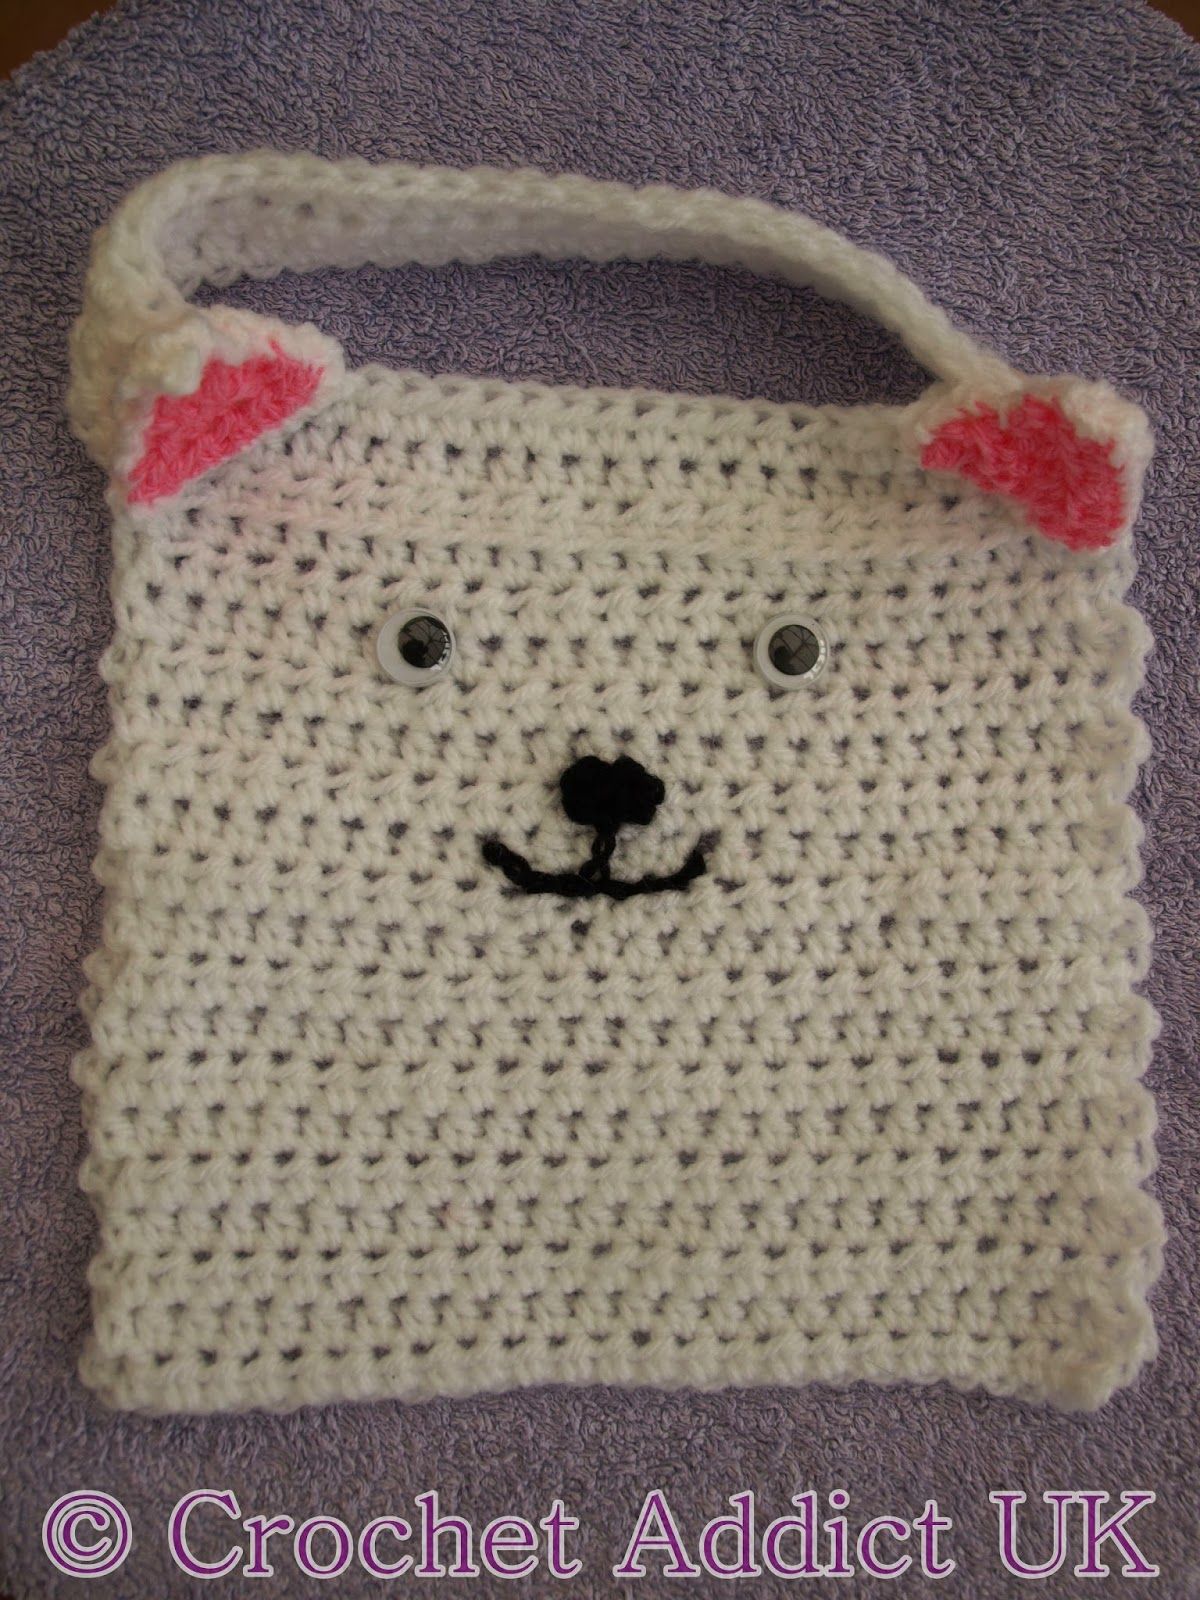 Cat baby bib free crochet pattern crochet addict uk the pattern is in us terms items required 4mm 6 and 5mm h hooks if you dont have a 4mm 6 hook use a 425mm g hook double knit 8 ply white bankloansurffo Image collections